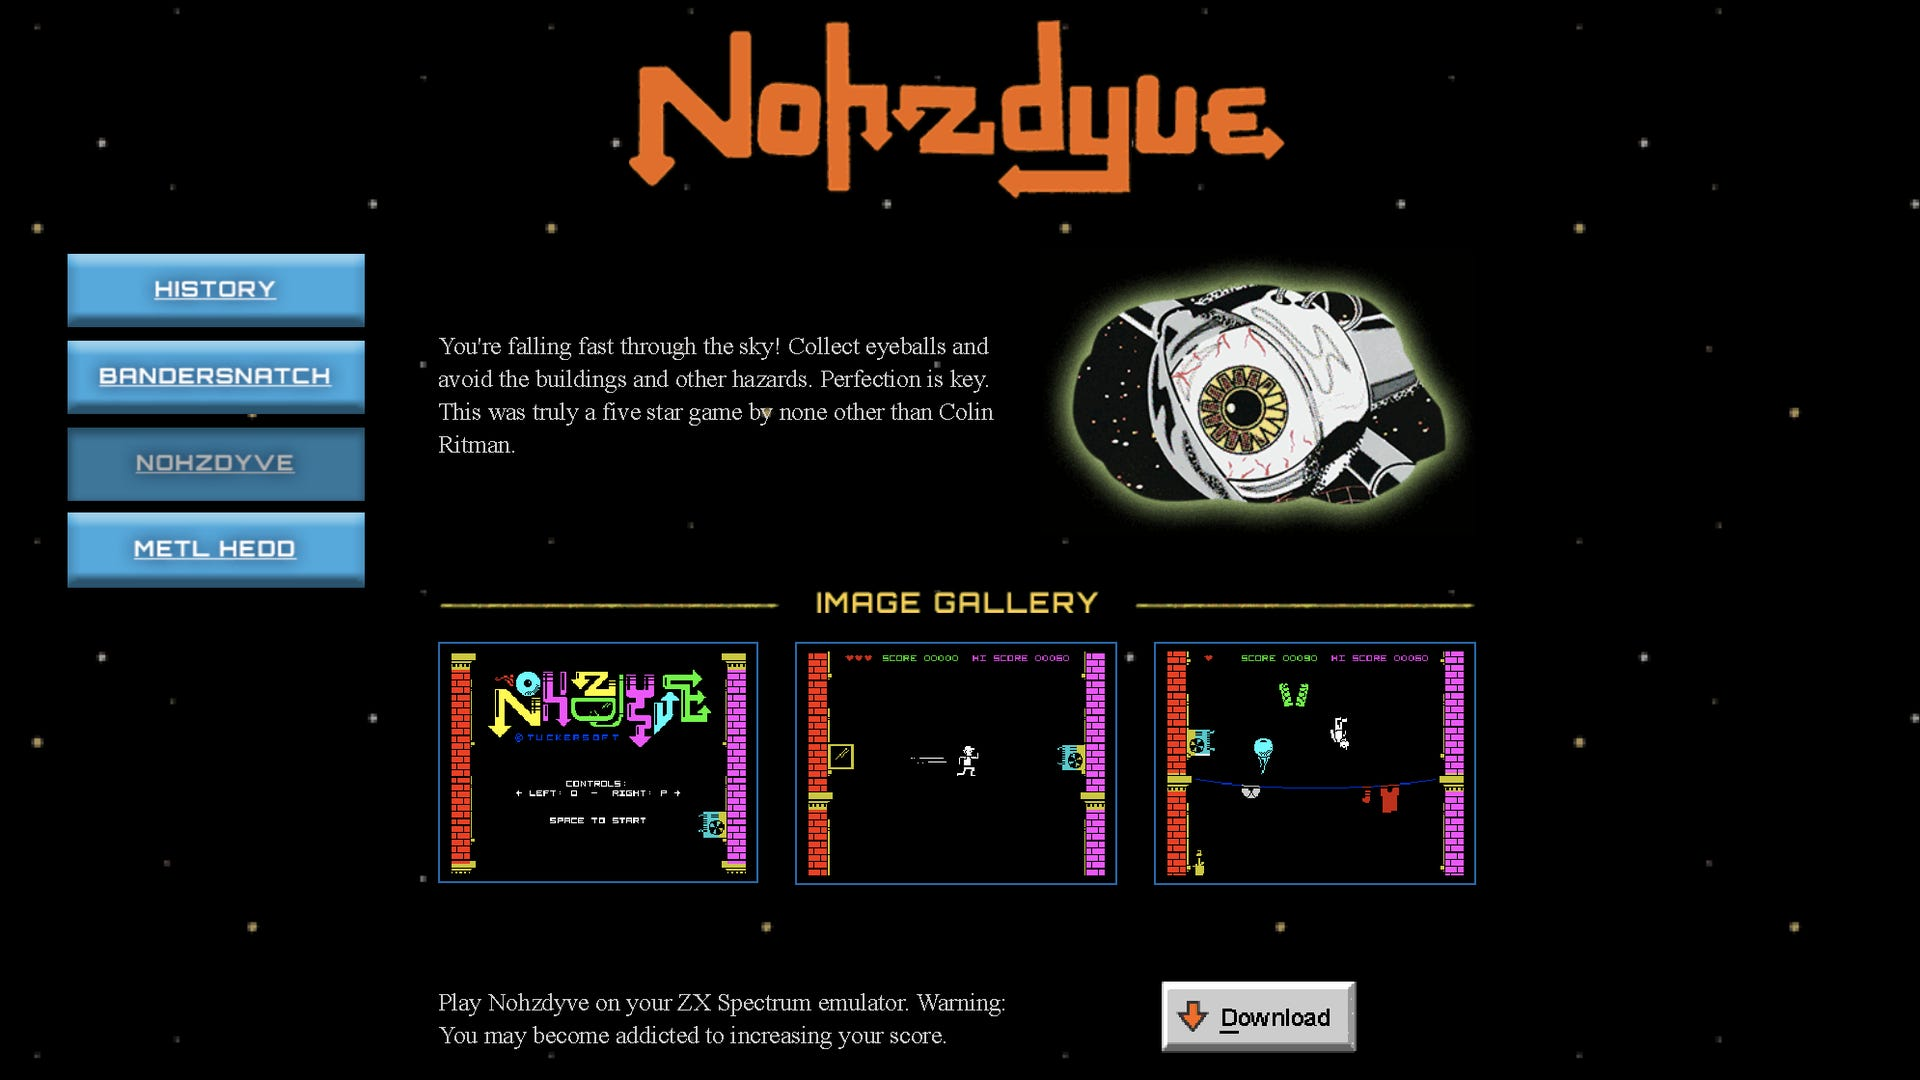 nohzdyveweb-page.png